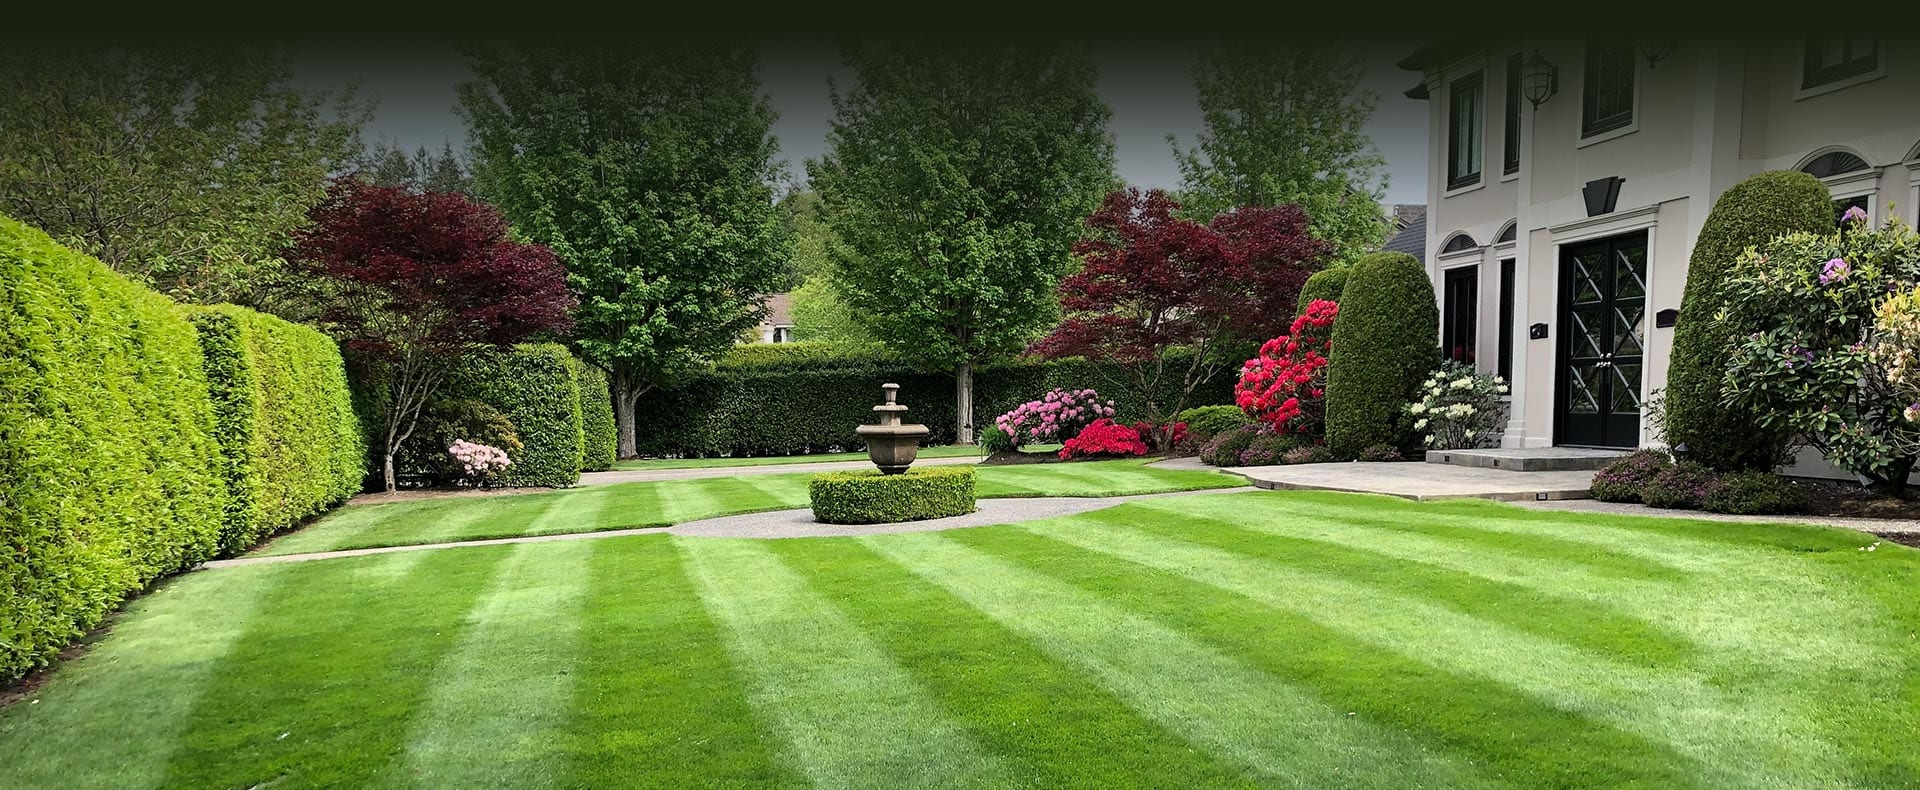 lawn-care-service-specialists